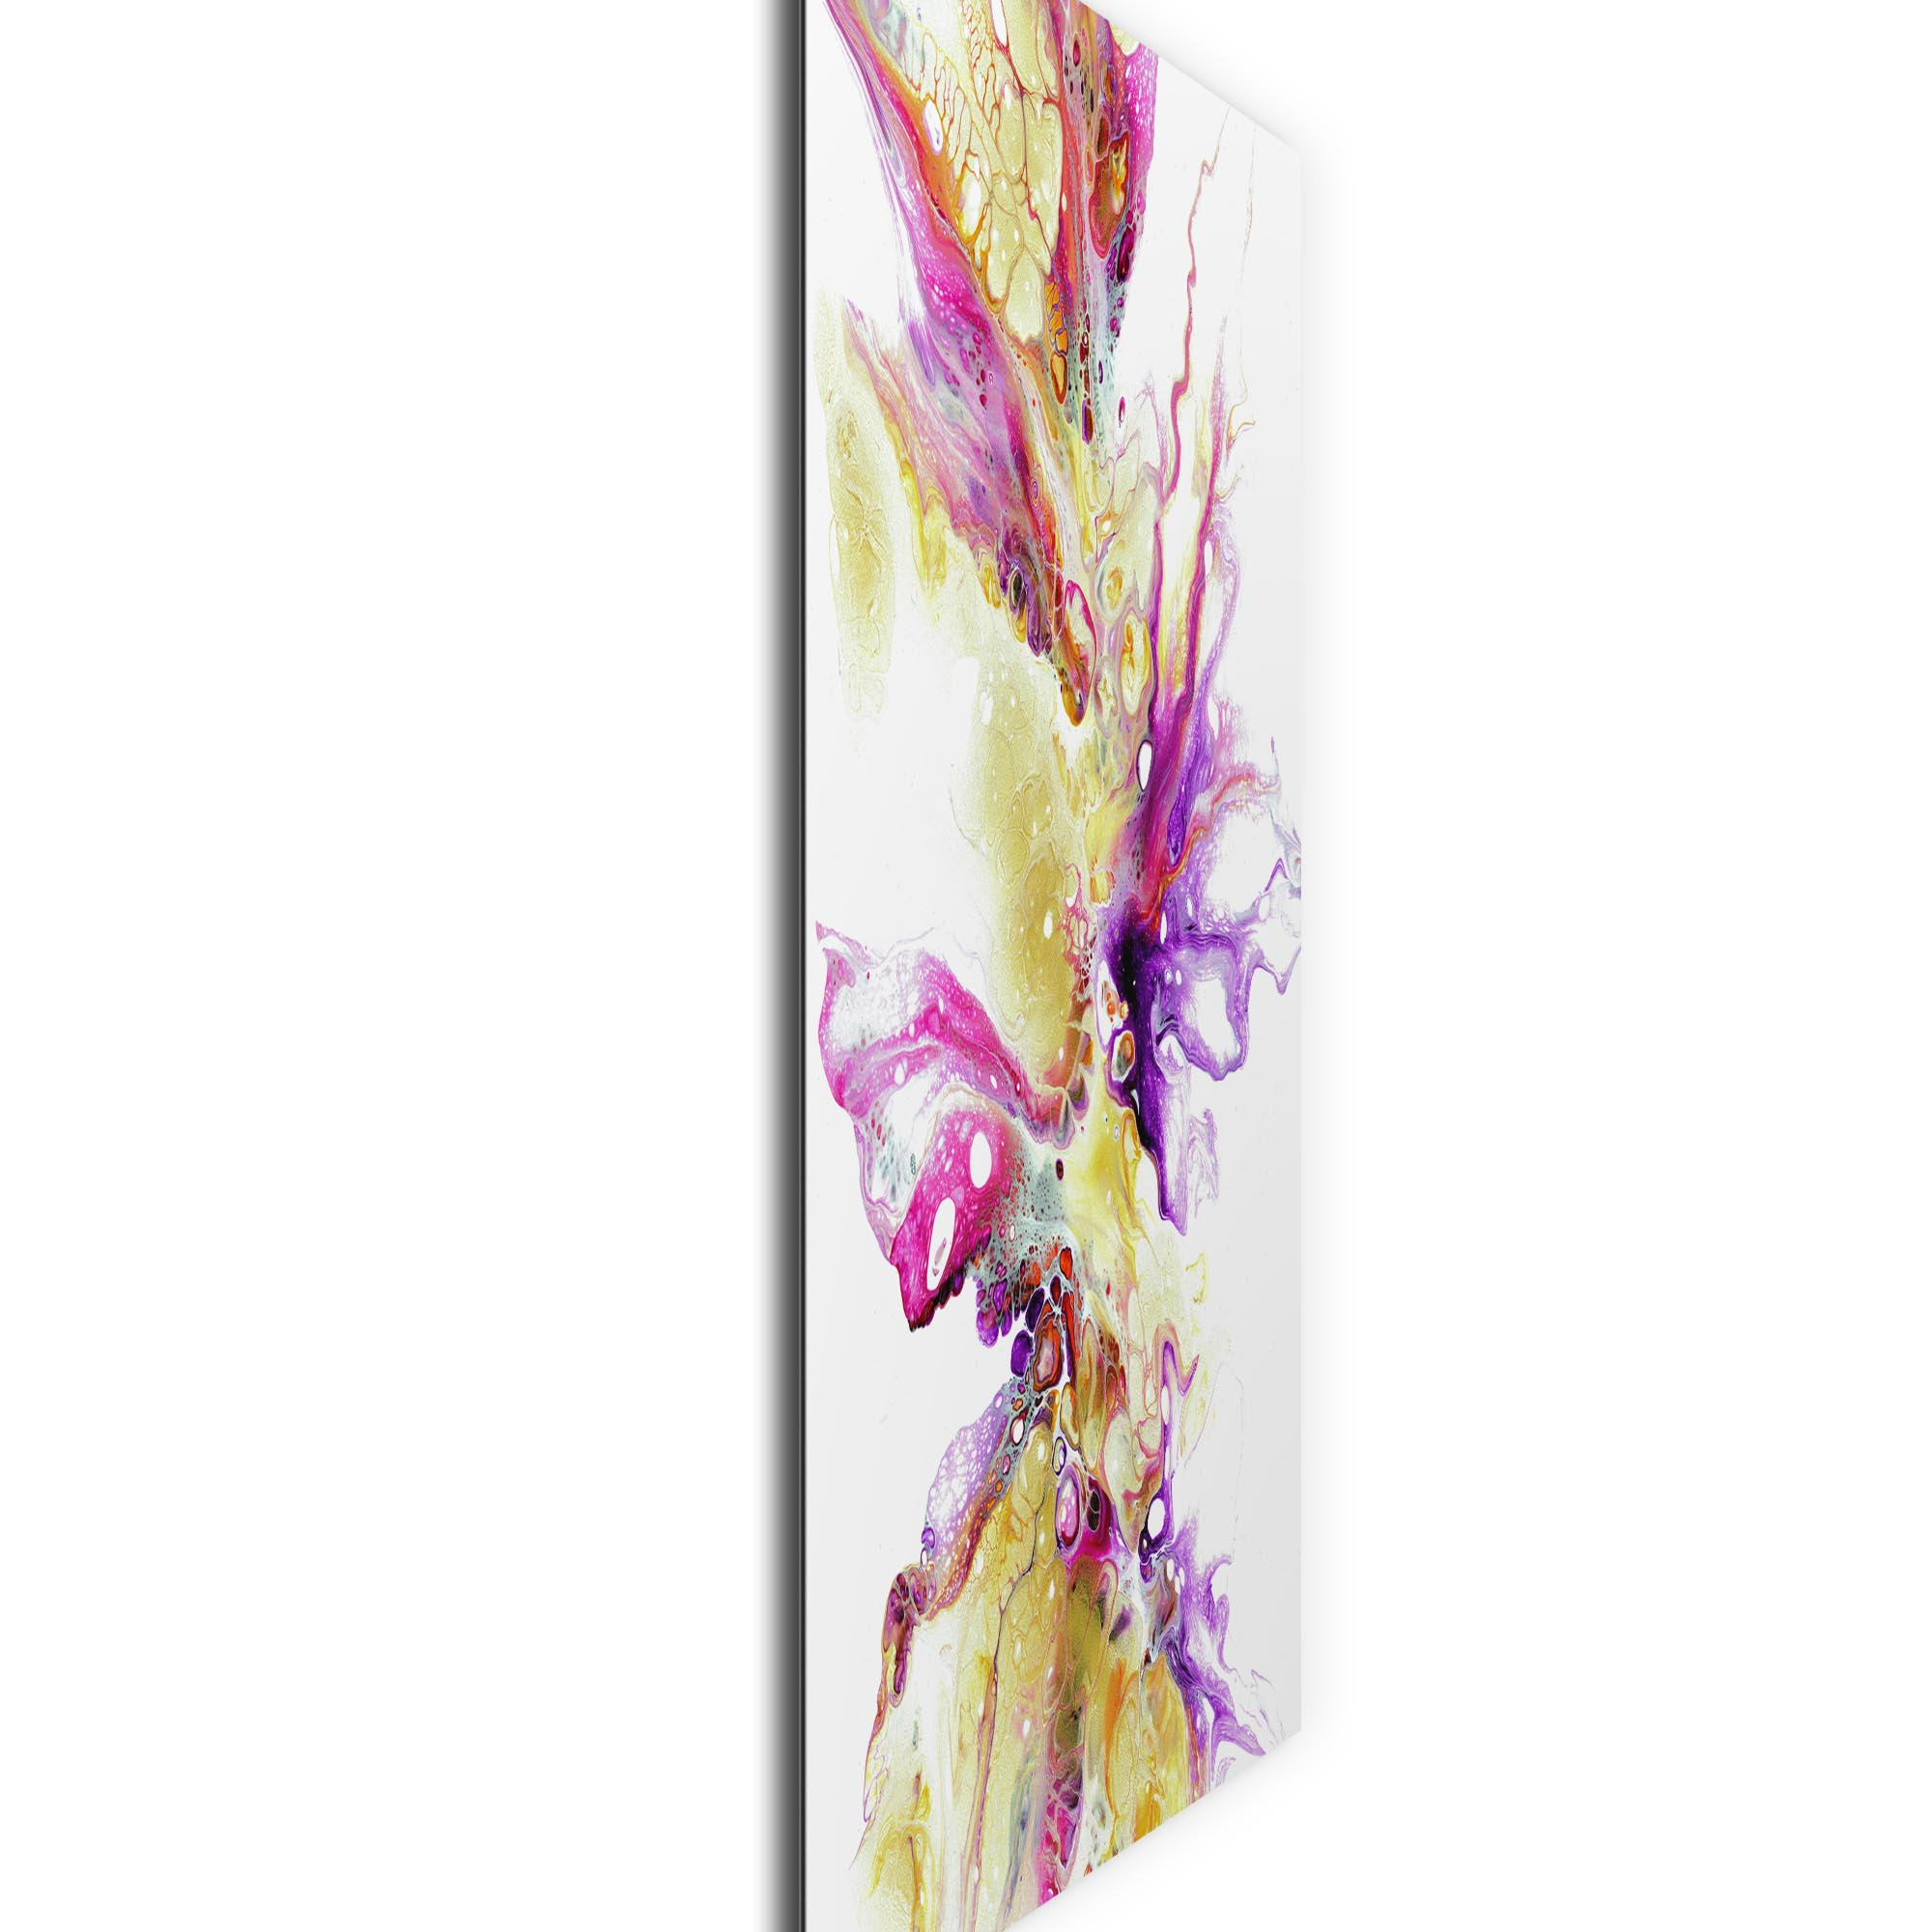 Entwine by Elana Reiter - Abstract Wall Art, Modern Home Decor (24in x 32in) - Image 2